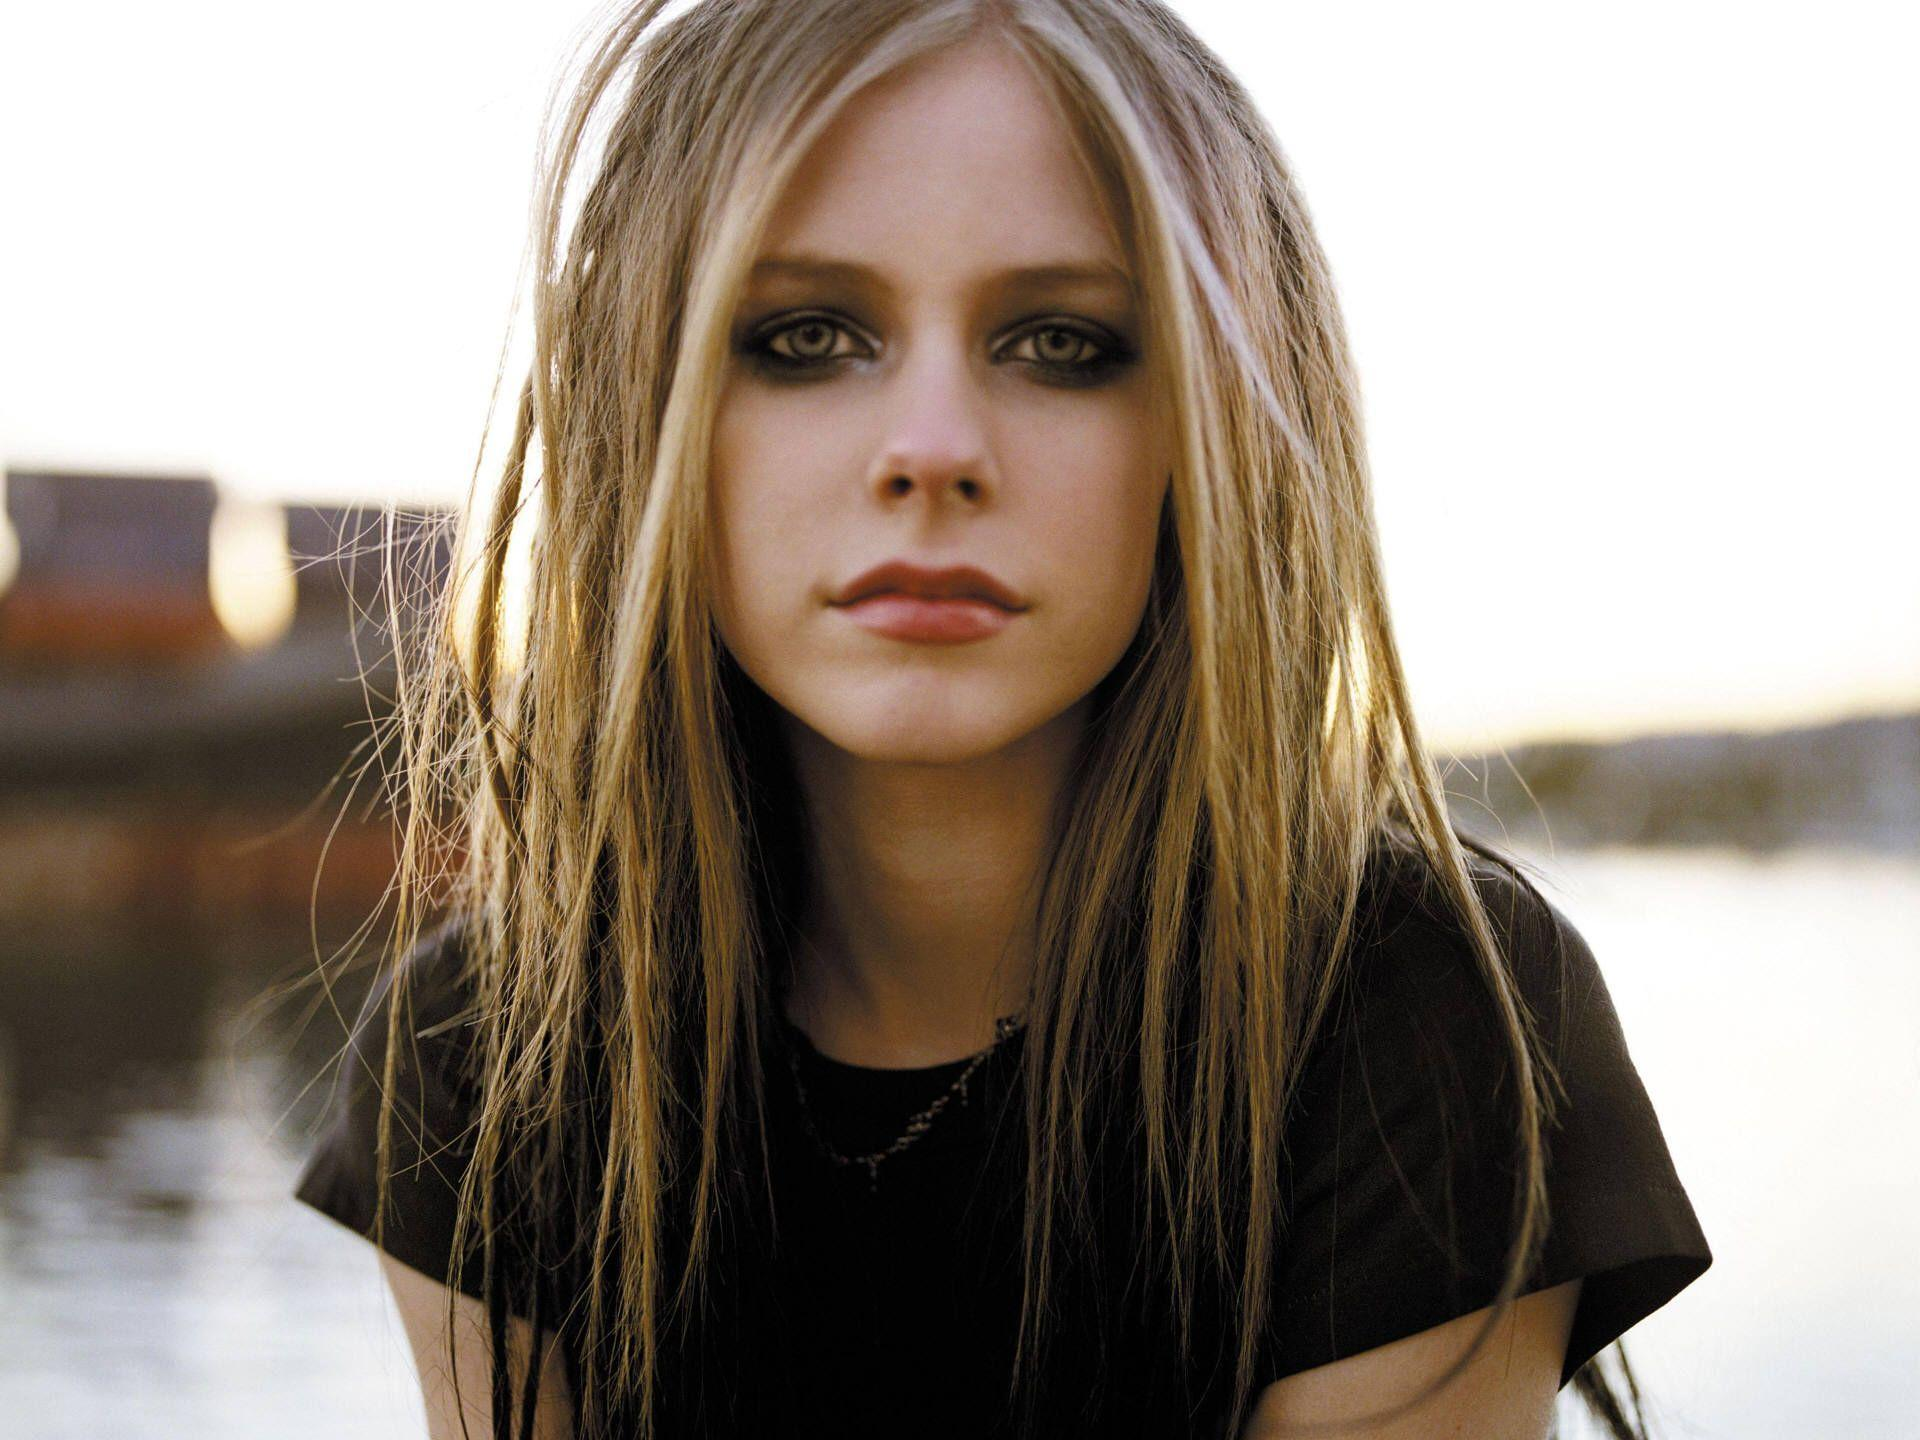 Avril Lavigne Wallpapers Wallpaper Cave